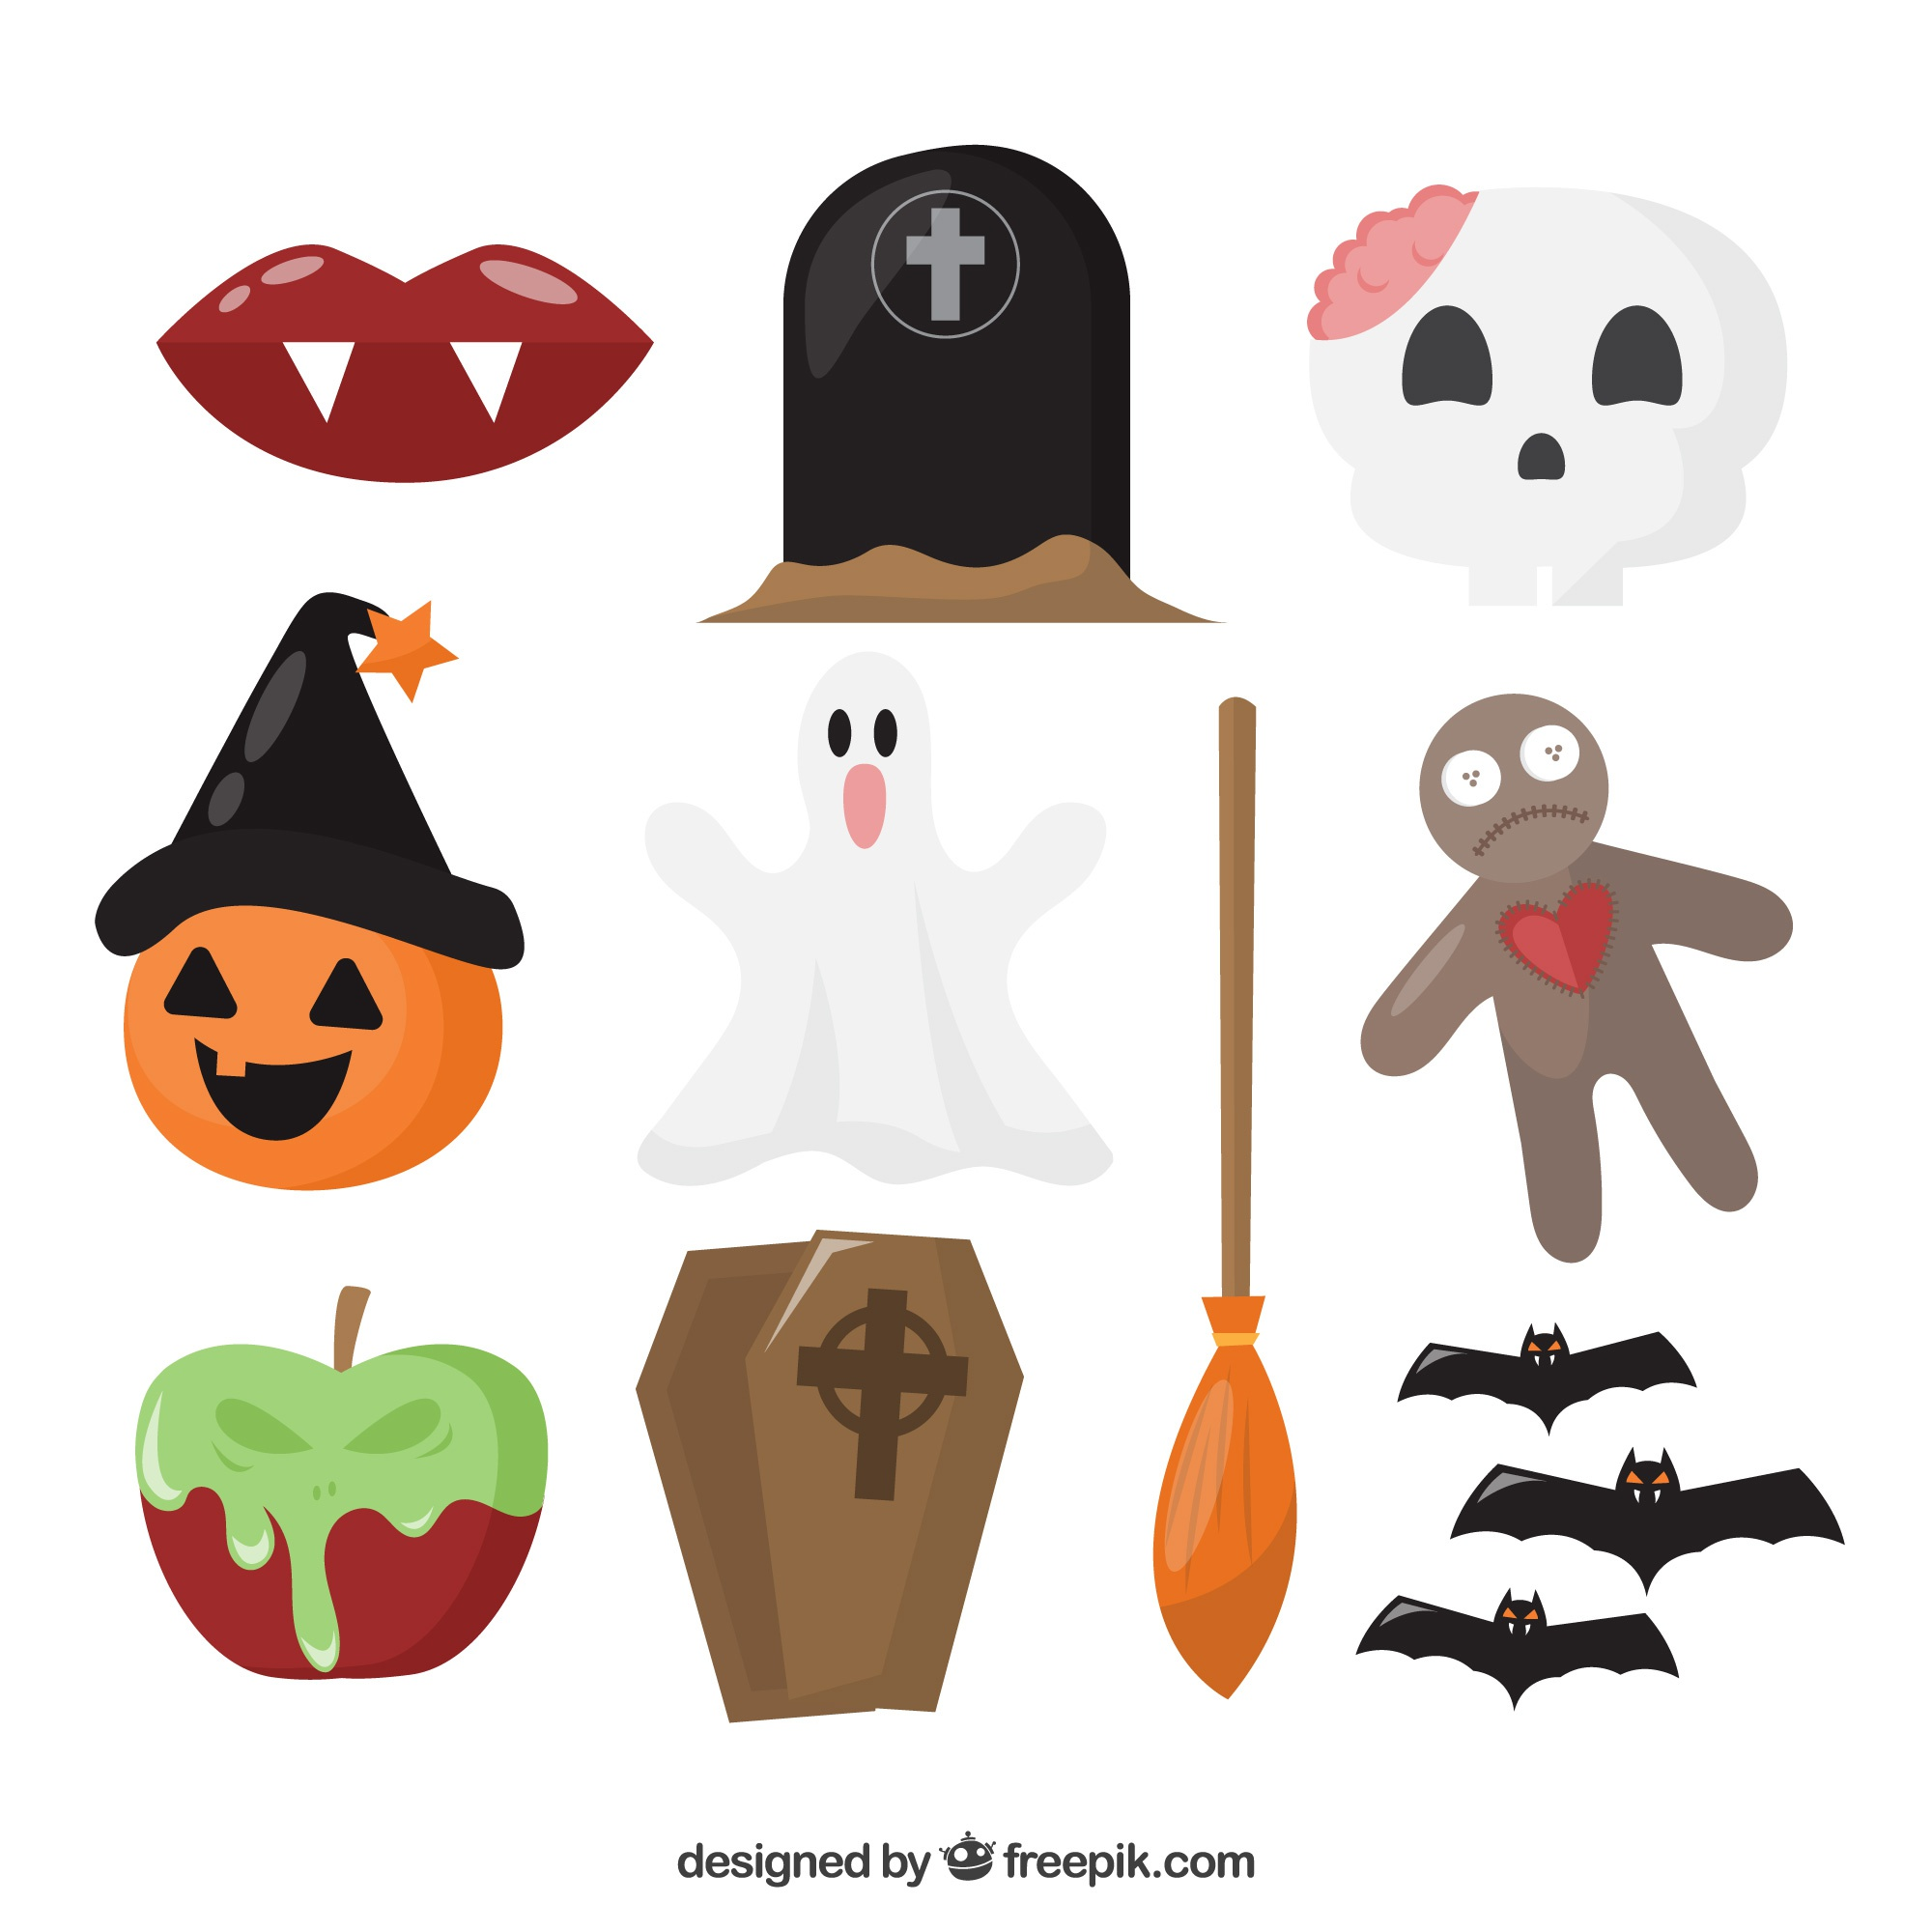 Ensemble de base d'objets de Halloween